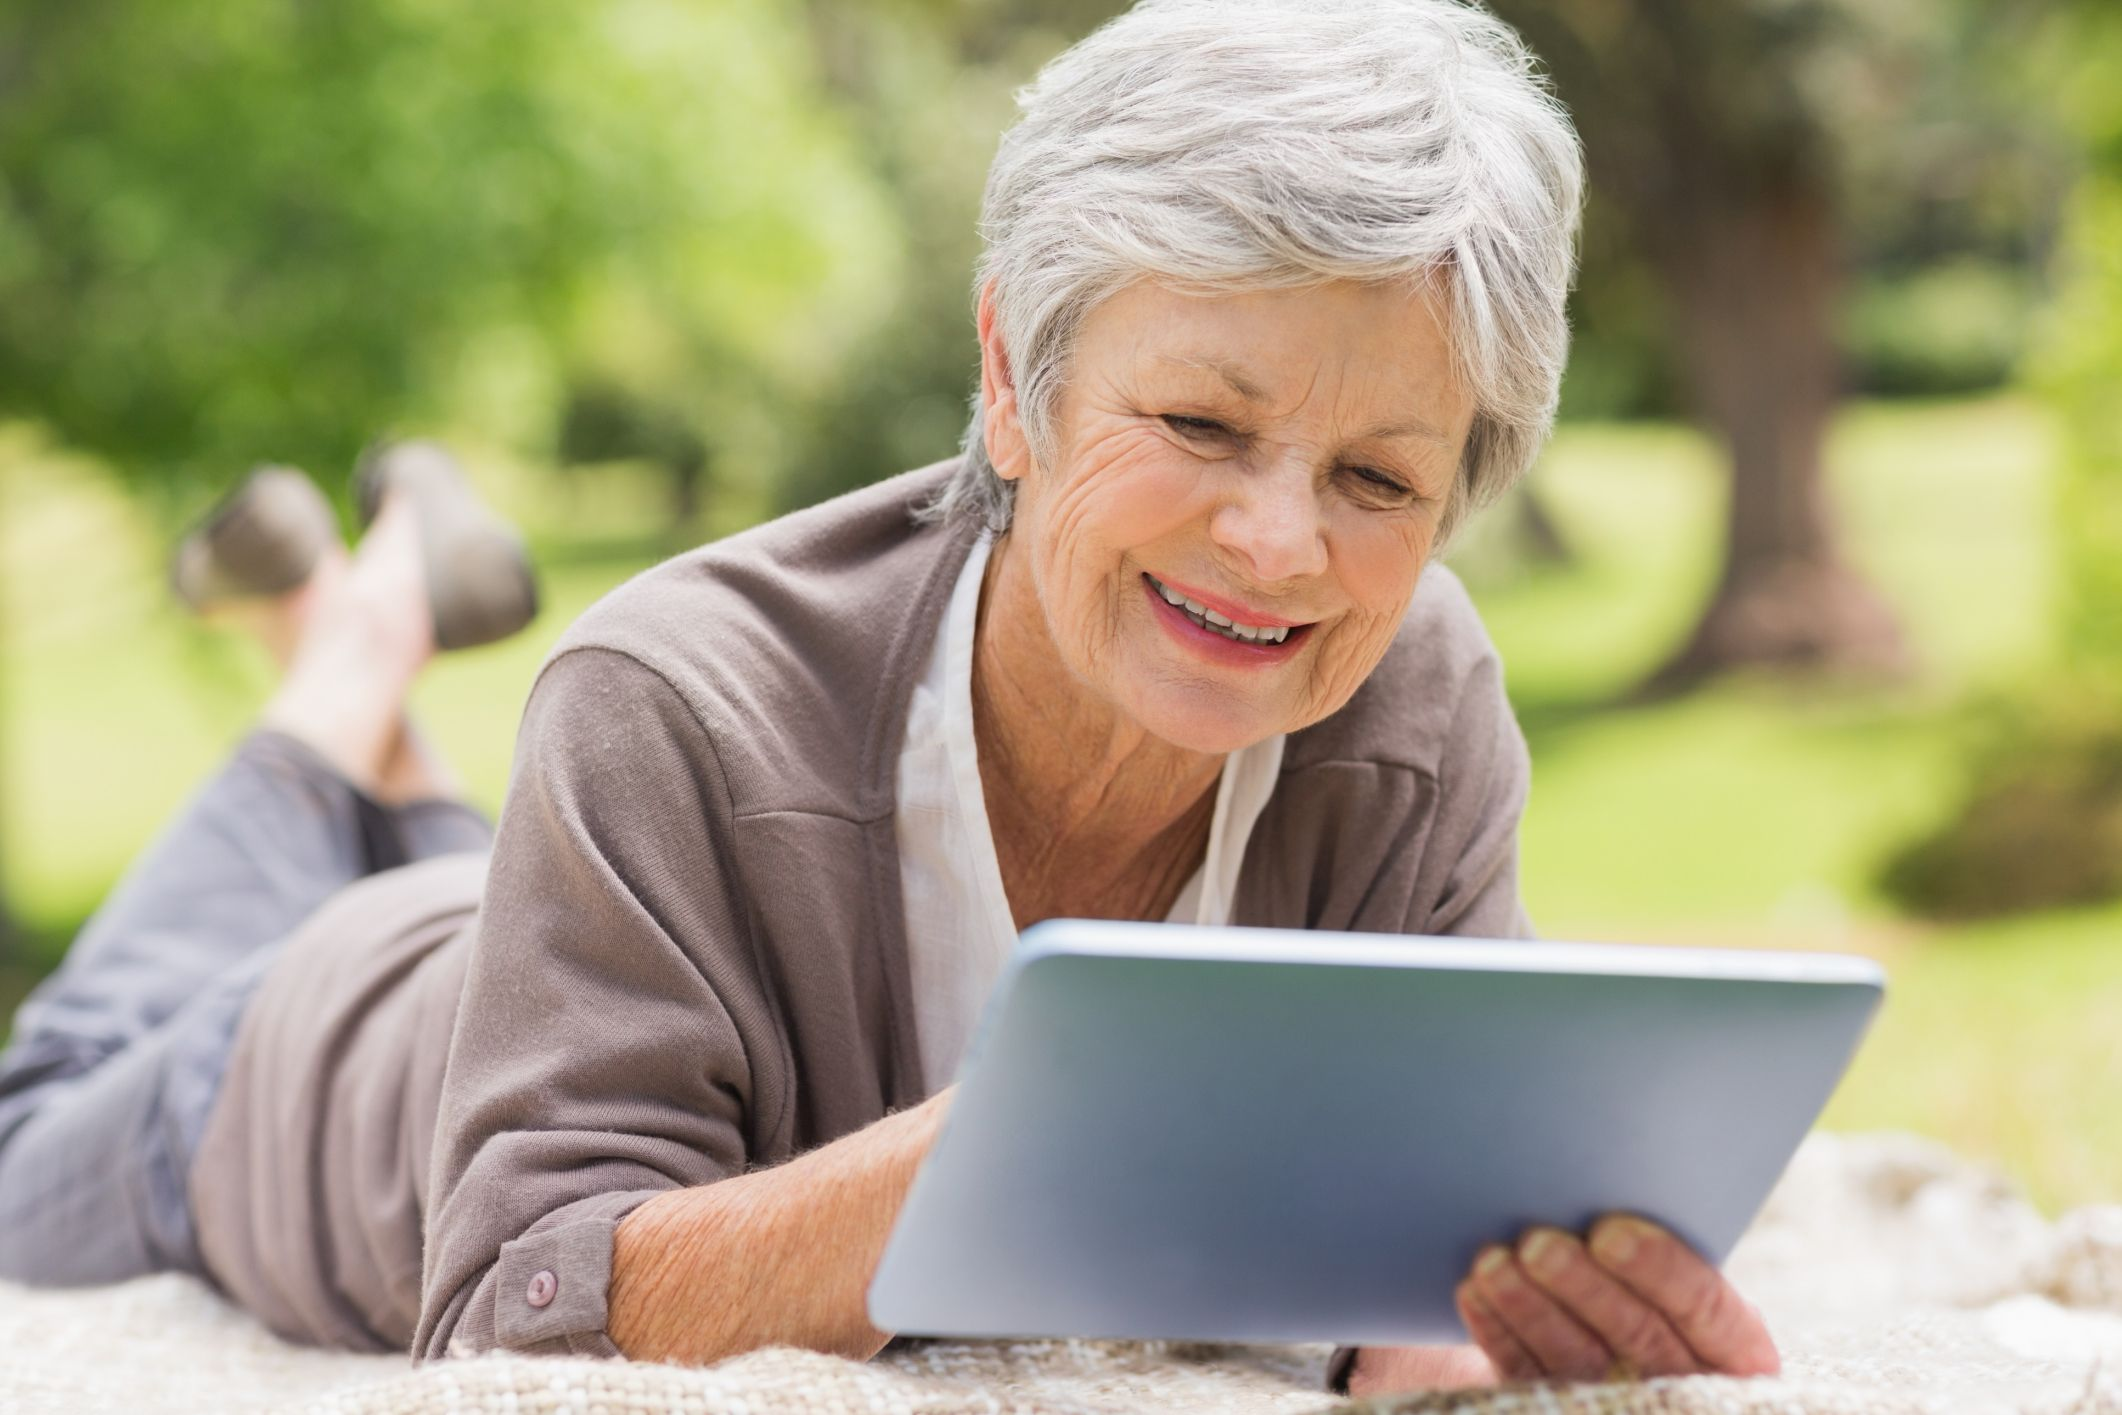 Games on the iPad for Older People Digital tablet